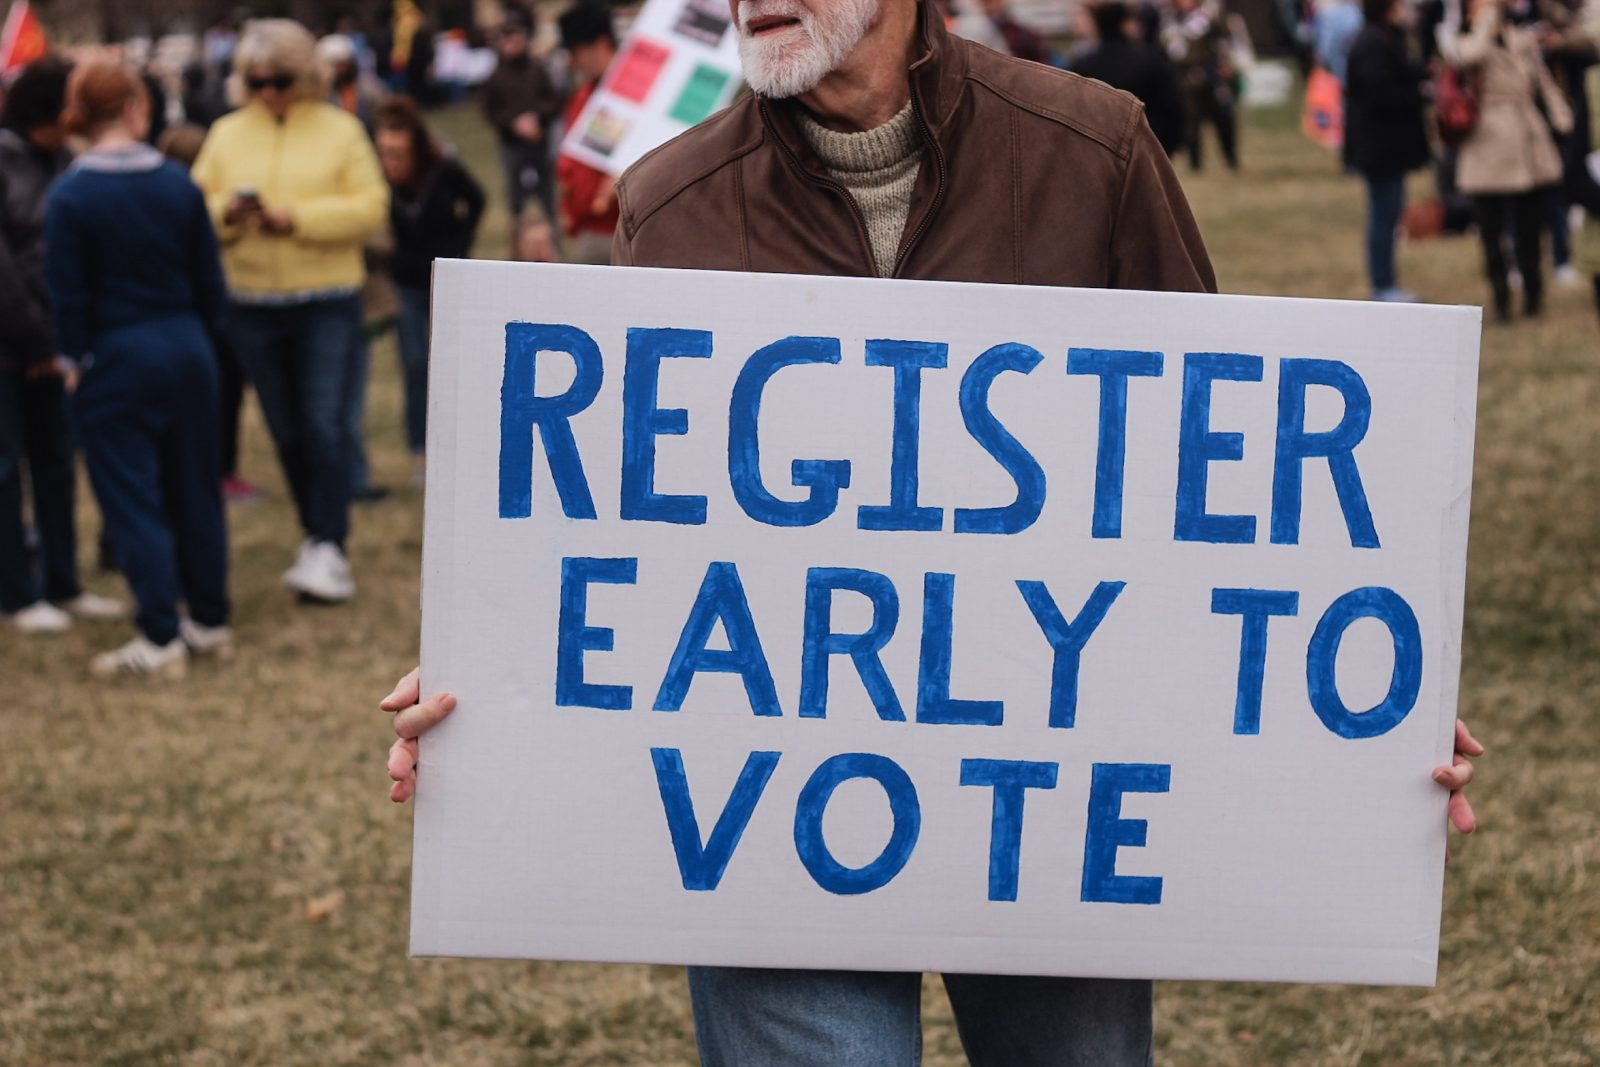 Check Your State: Register to Vote and Confirm or Change Registration